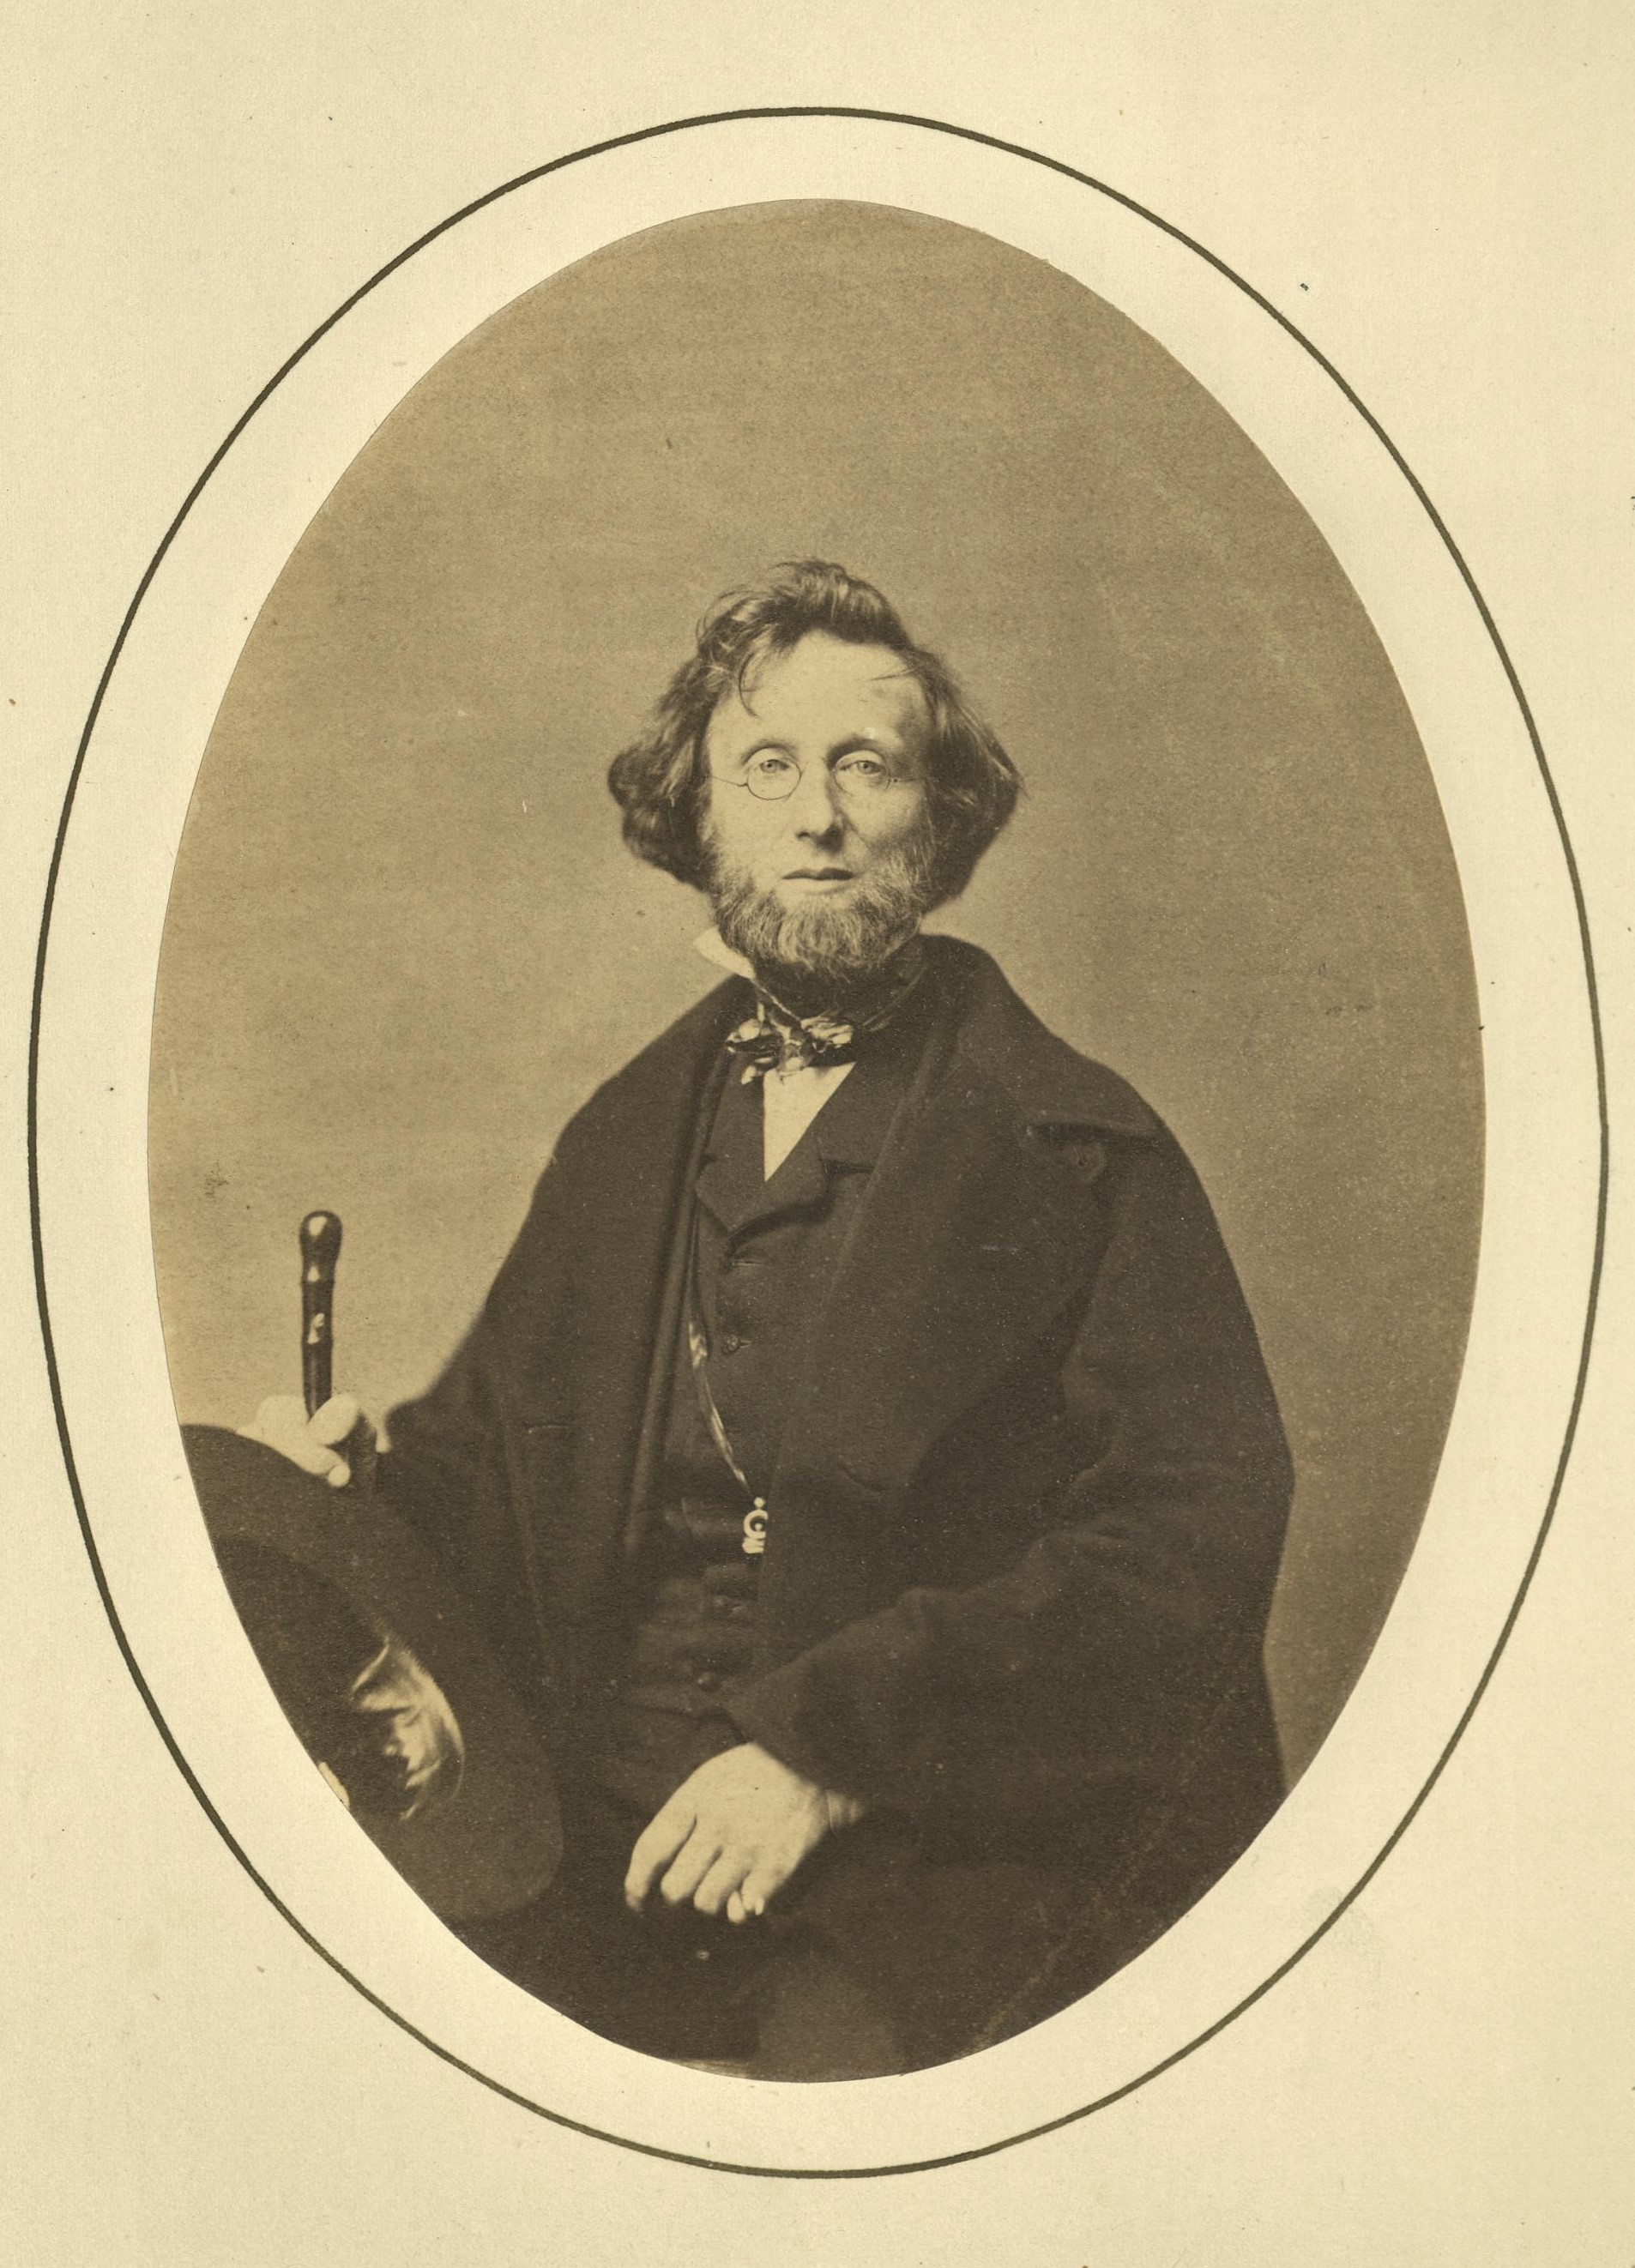 Member portrait of Daniel Huntington